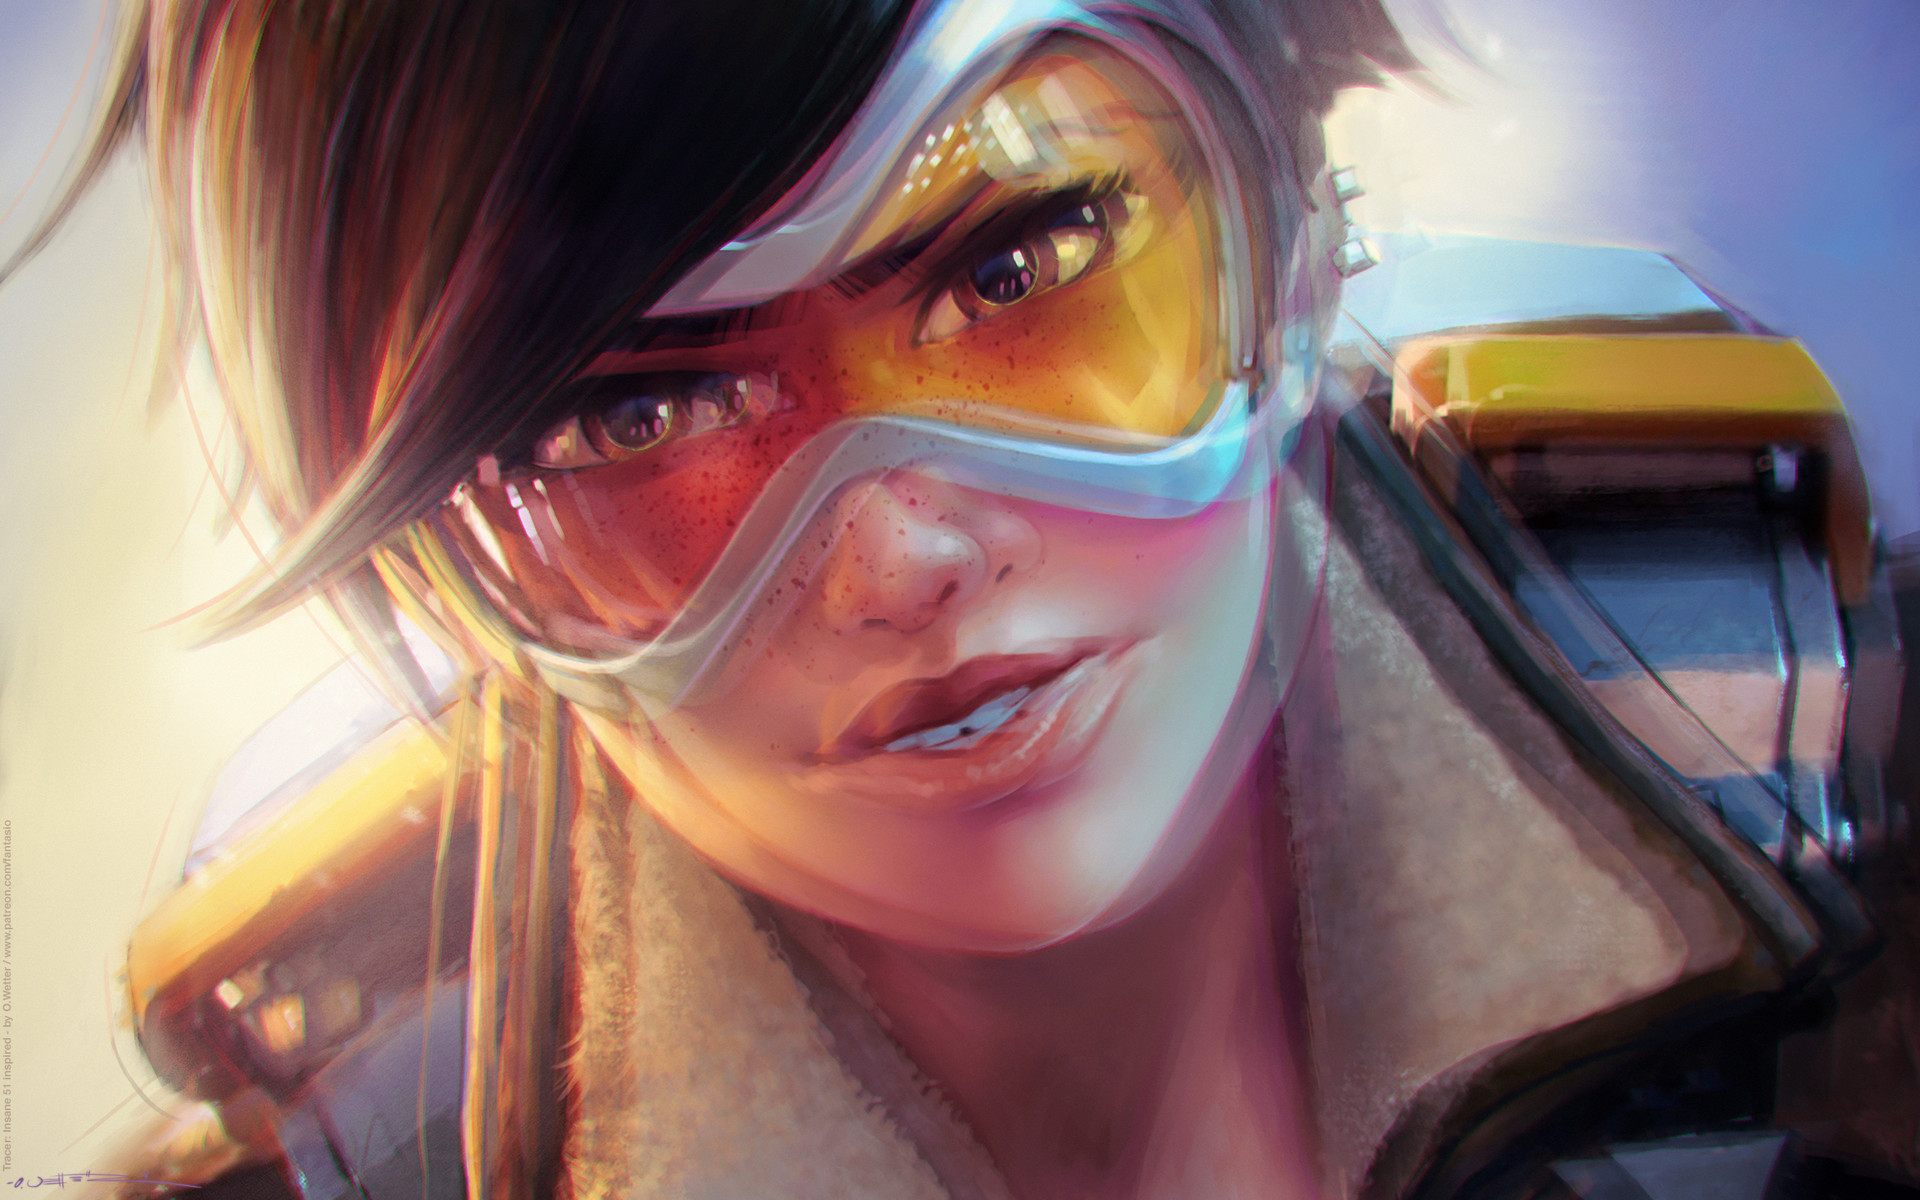 Oliver wetter tracer insane 51 wallpaper